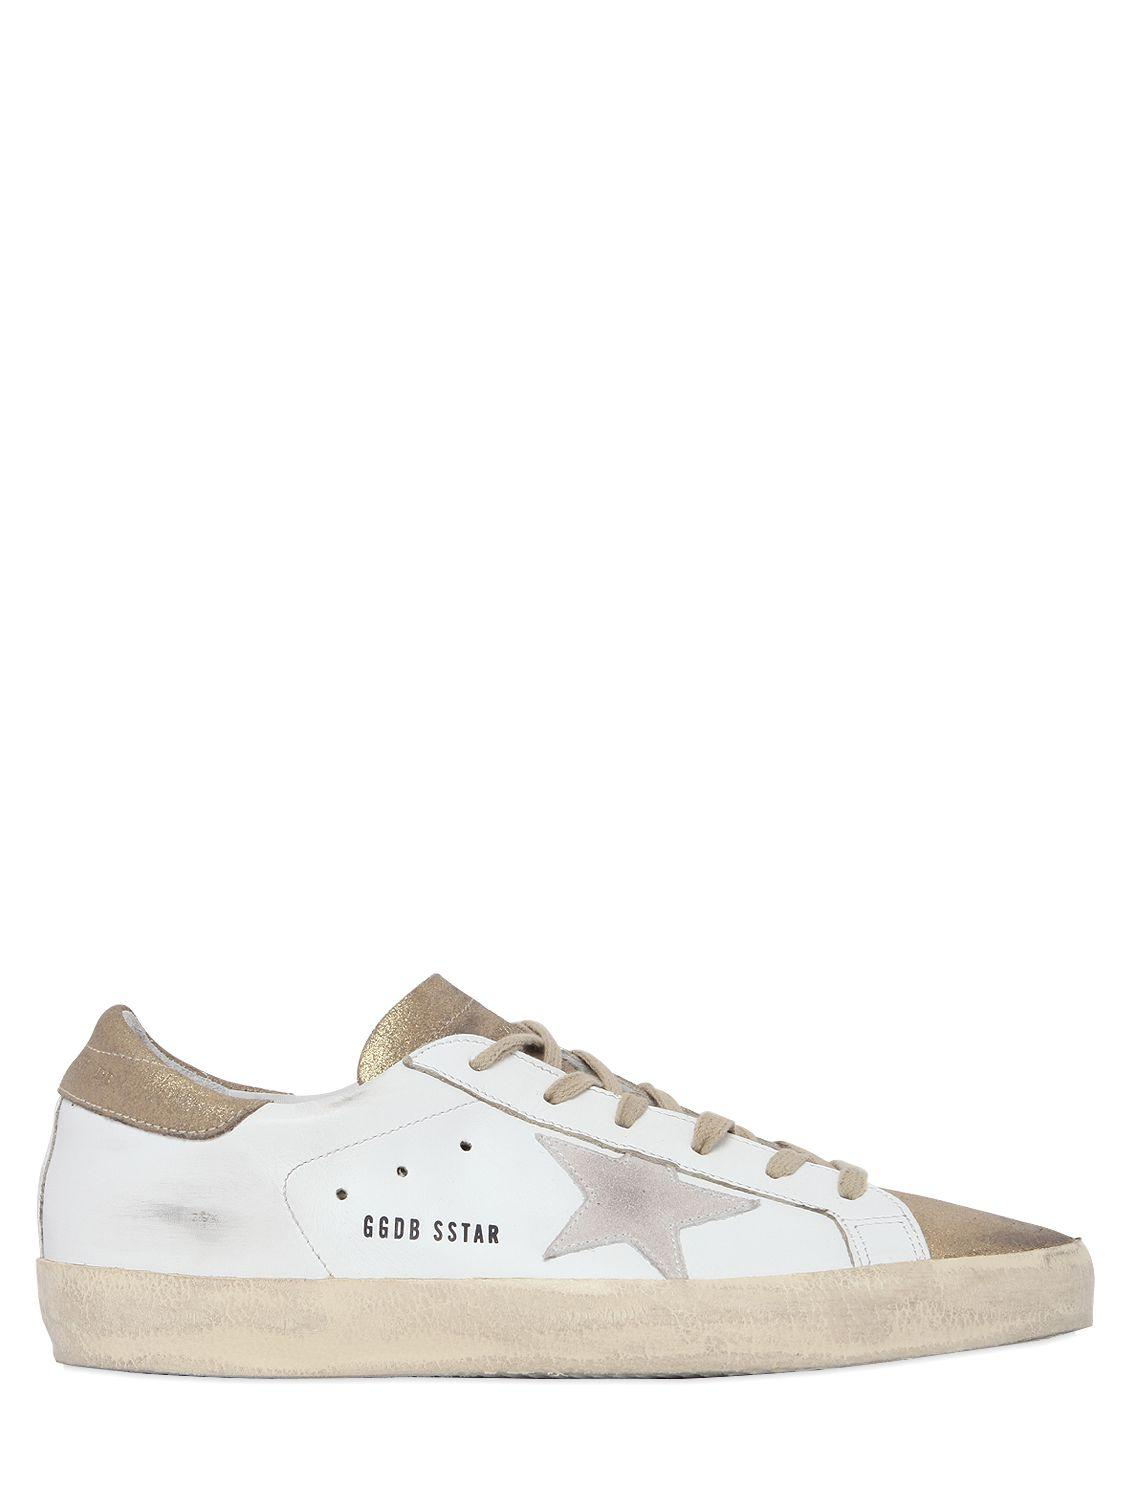 Sale - Superstar Leather Velcro Trainers - Golden Goose Deluxe Brand Golden Goose Cost Online Fashionable For Sale 2018 Unisex Outlet Store Online umgWt